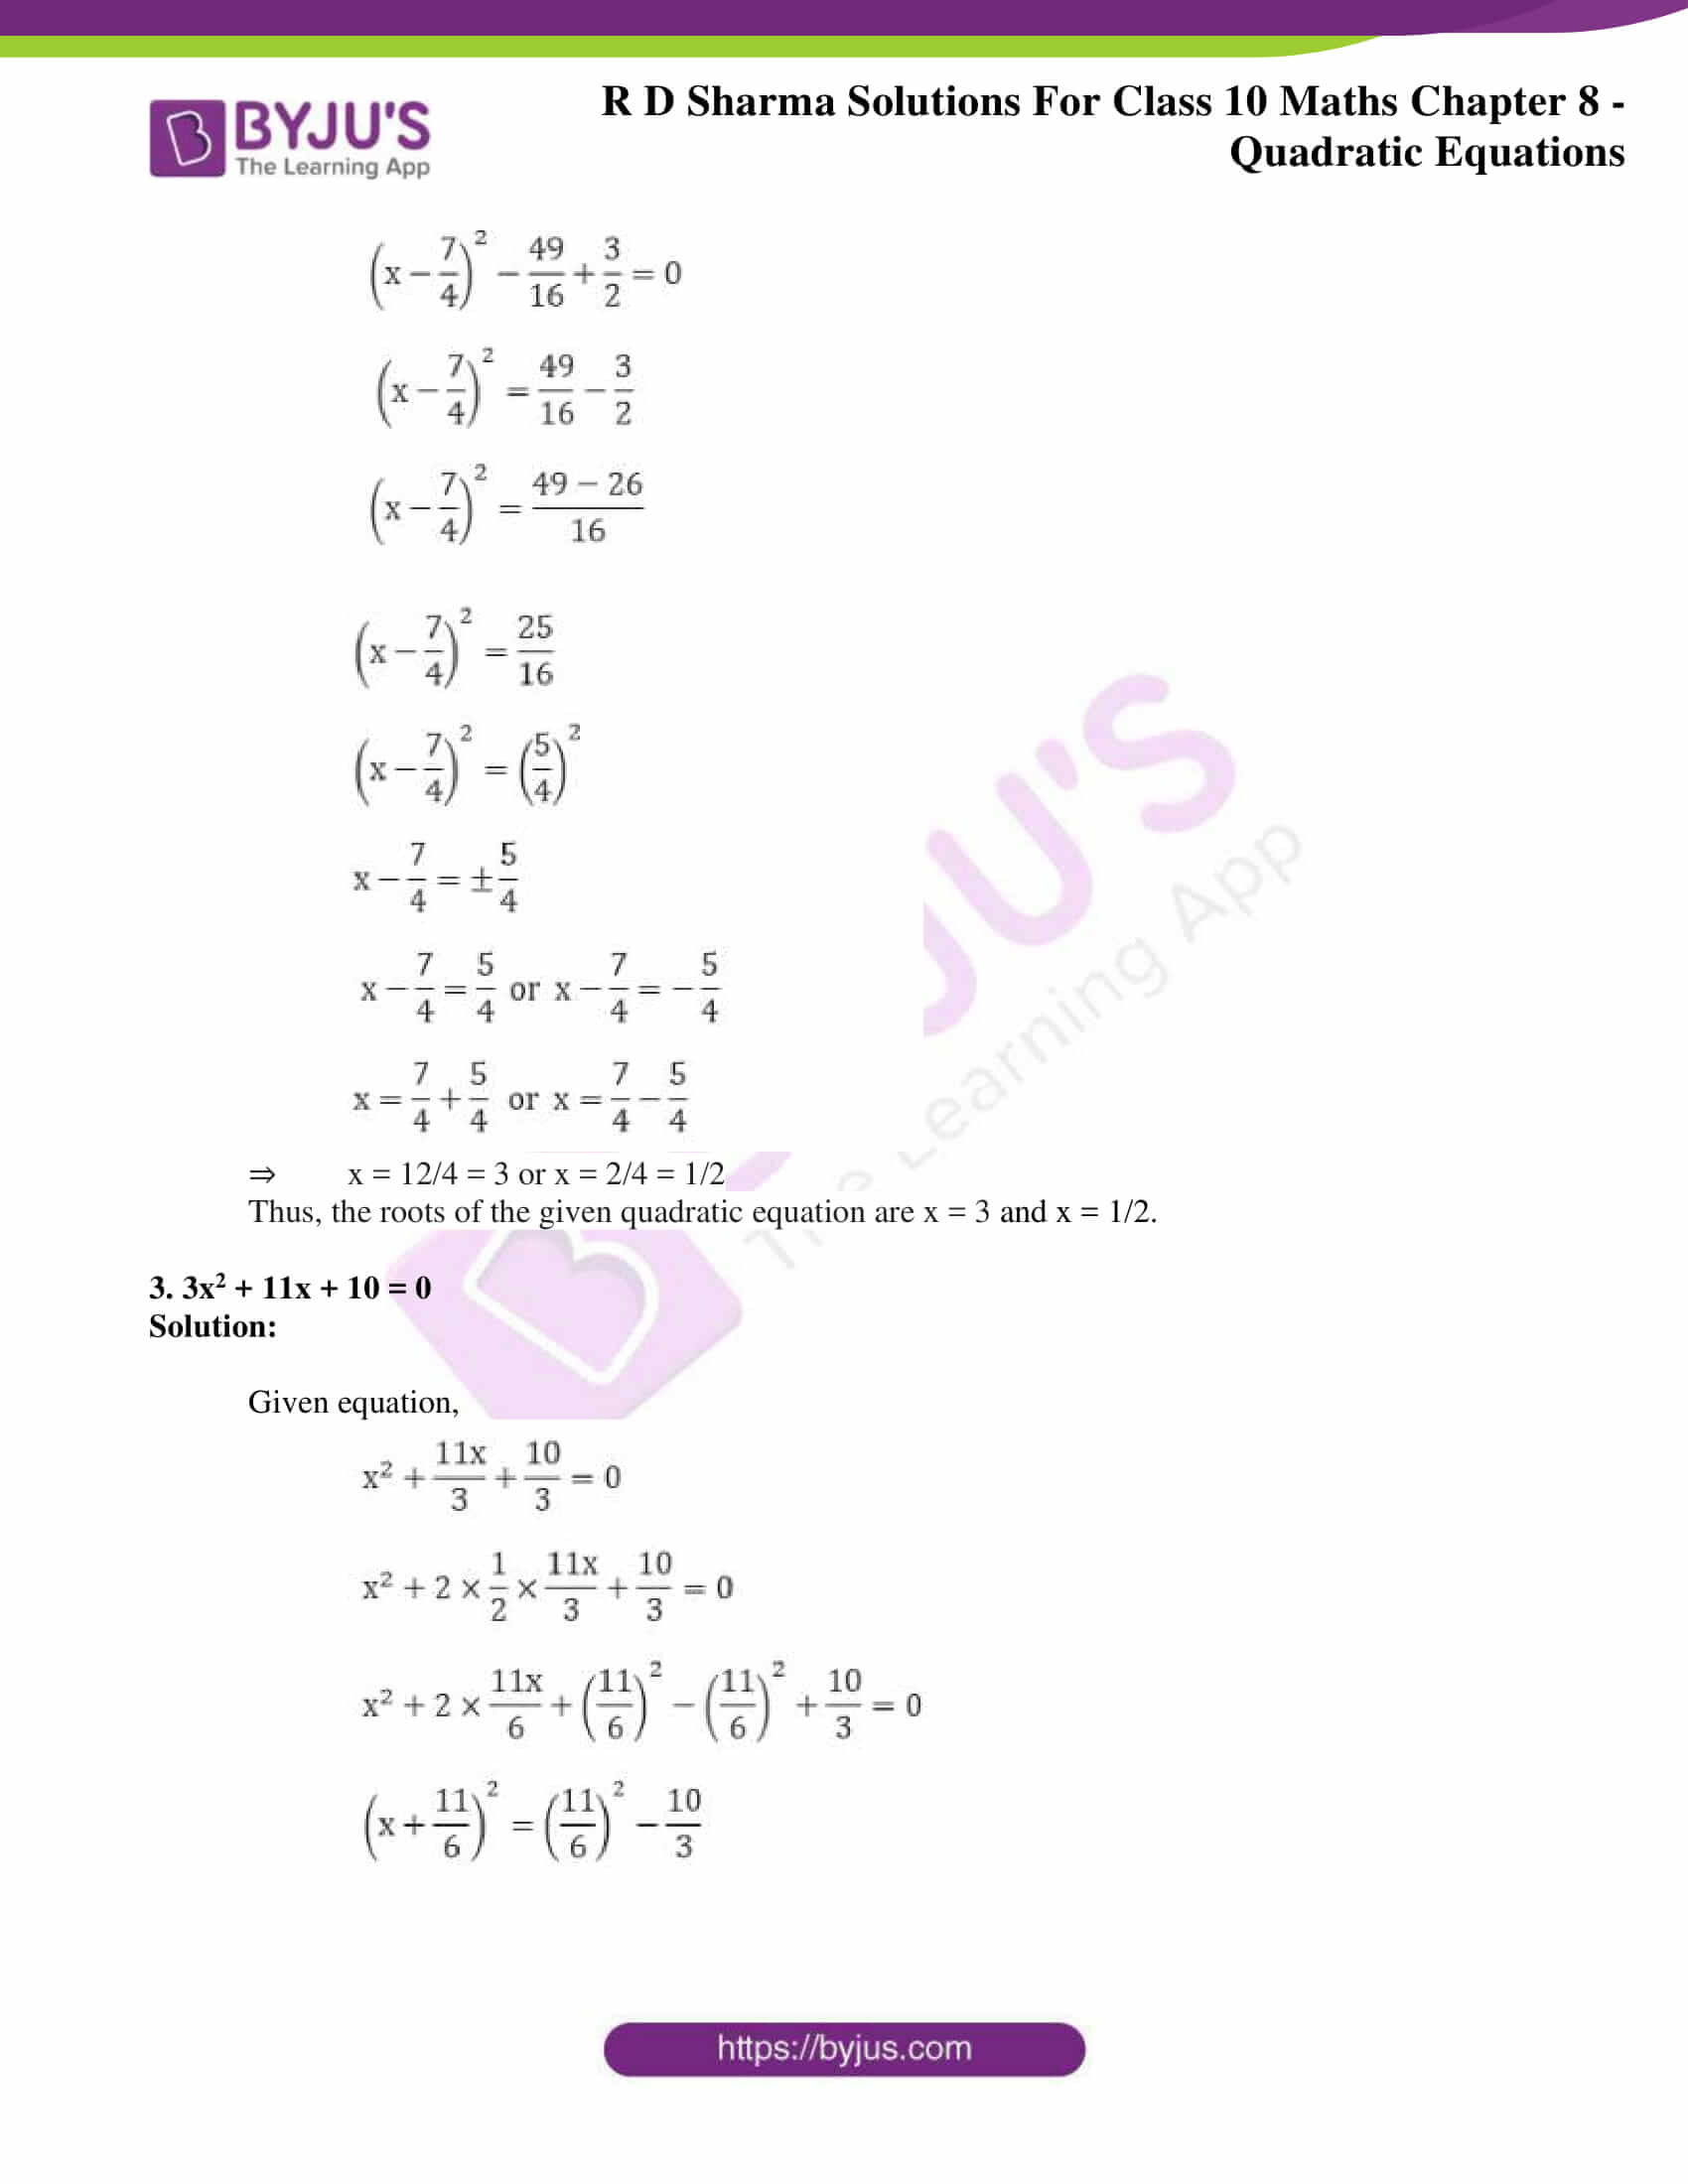 RD Sharma Solutions for Class 10 Chapter 8 Quadratic Equations 25